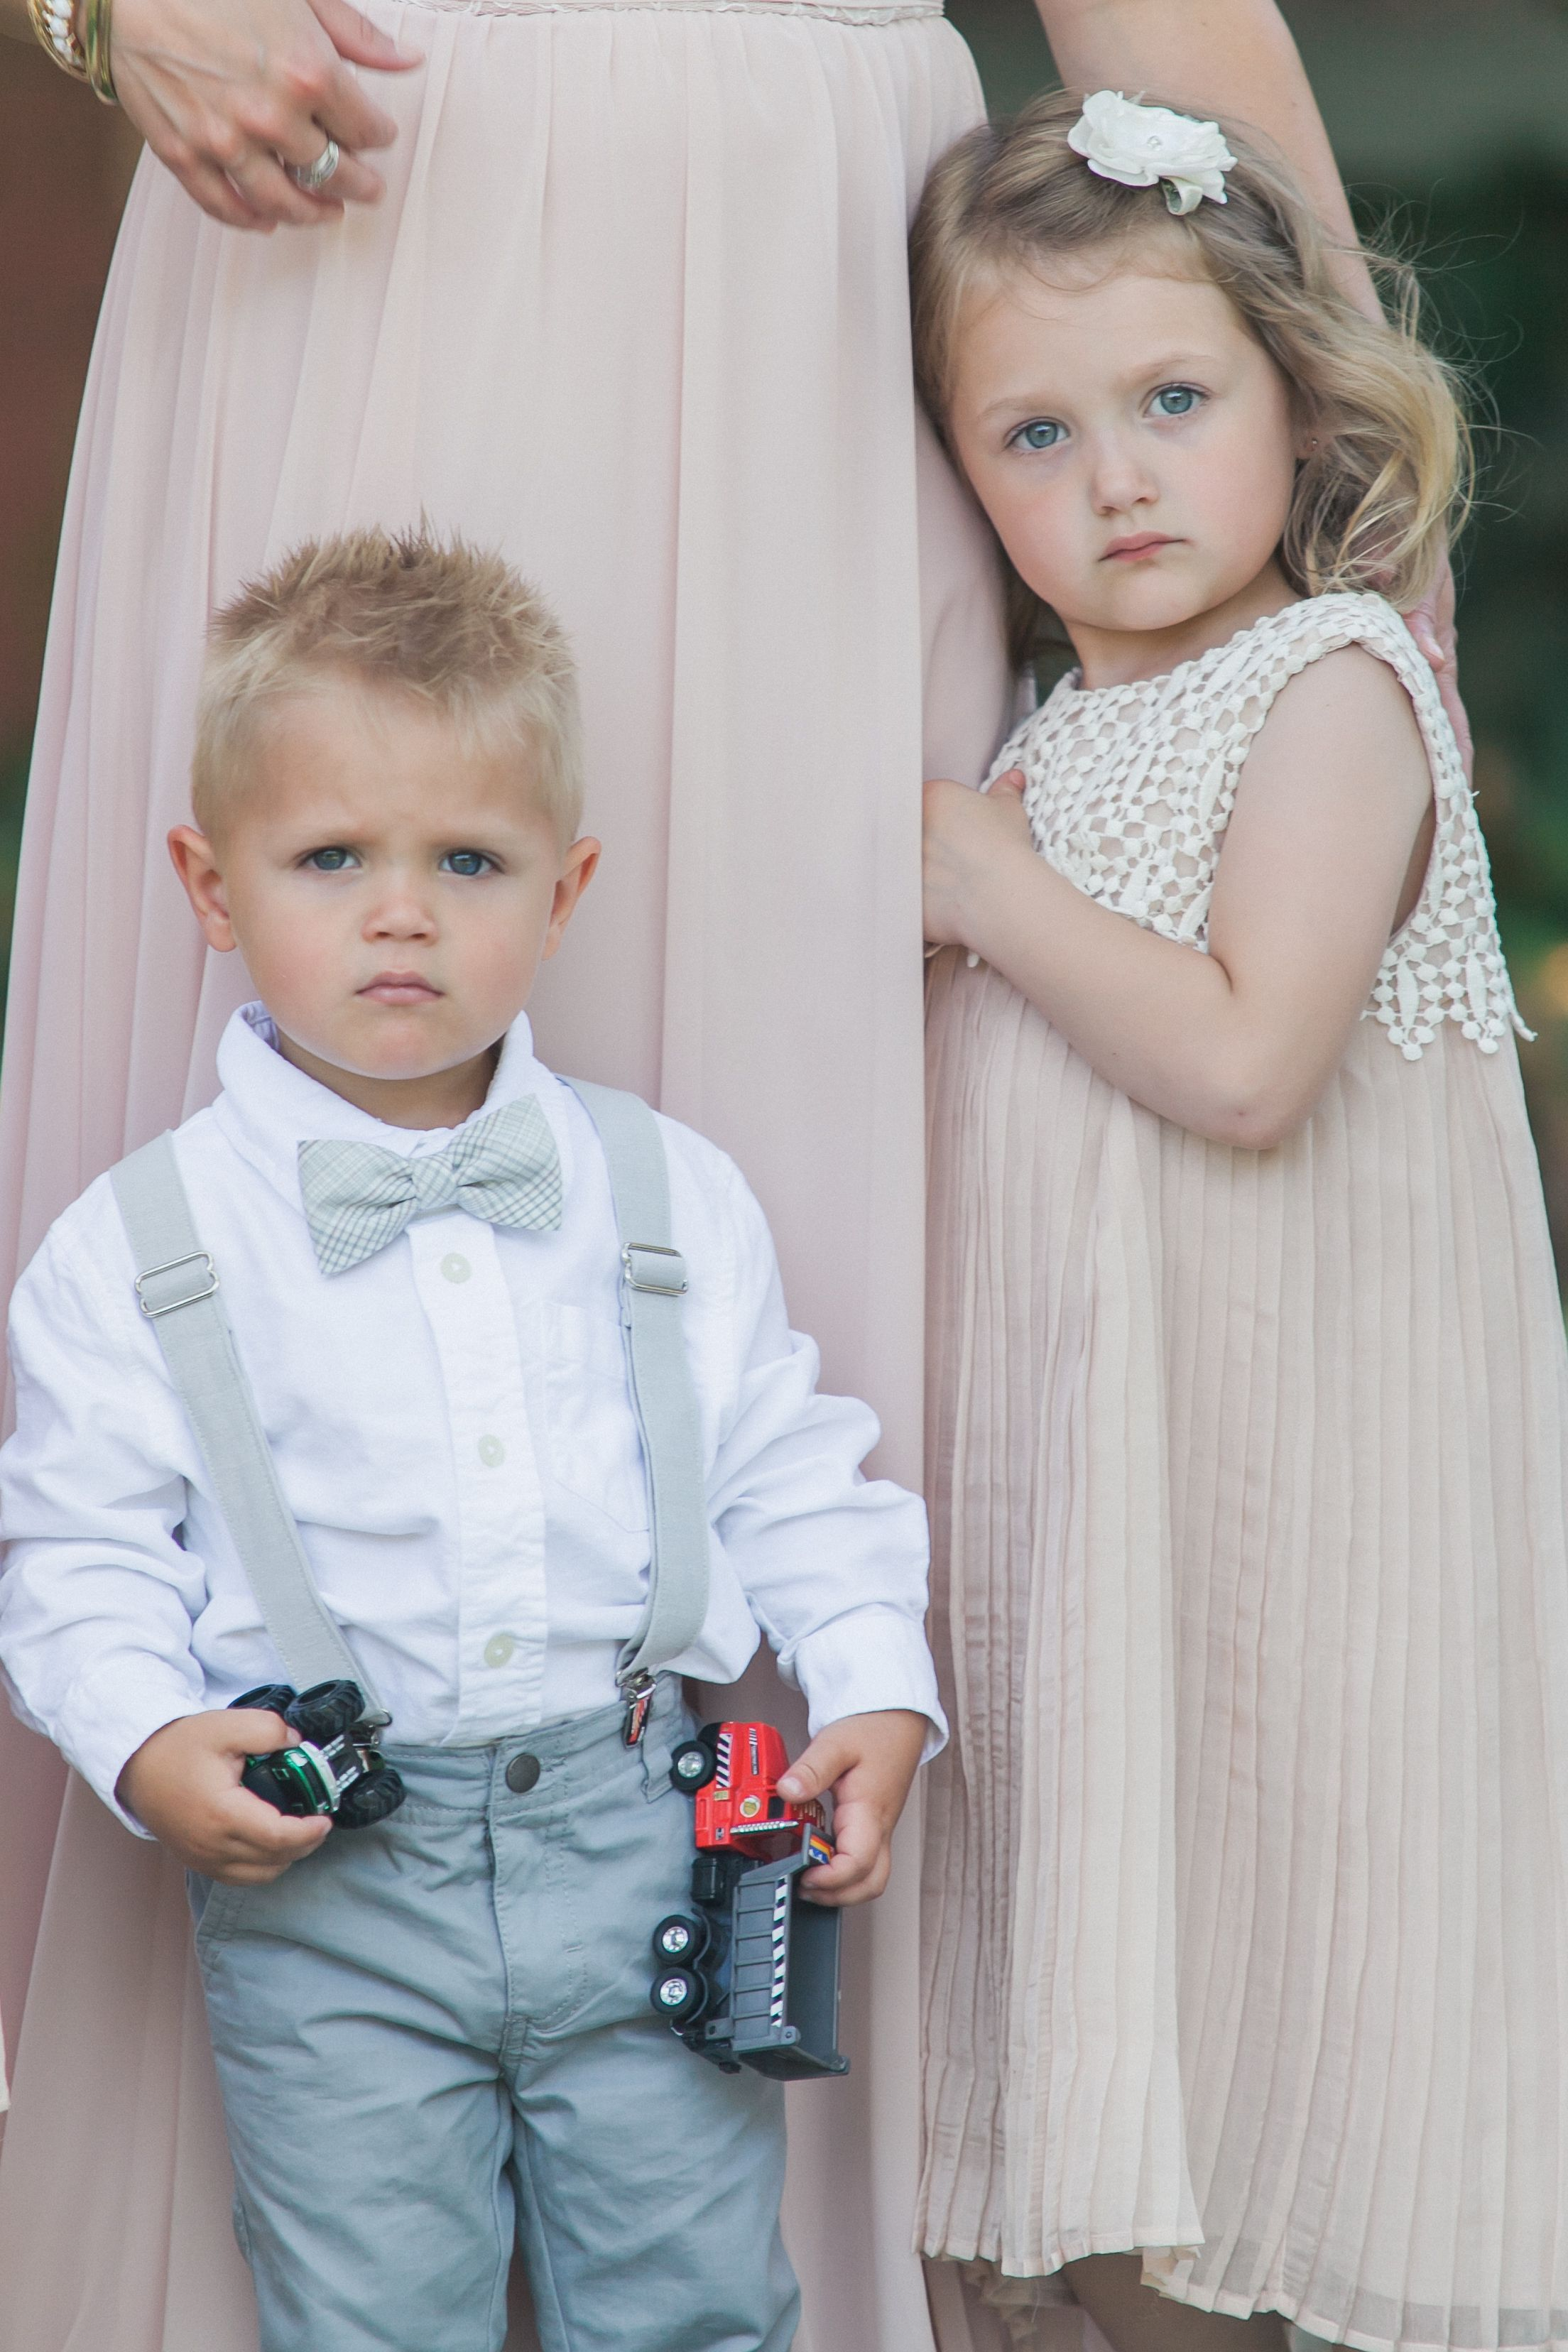 04b263c2d5f Affordable ring bearer outfit  pants and shirt  Target